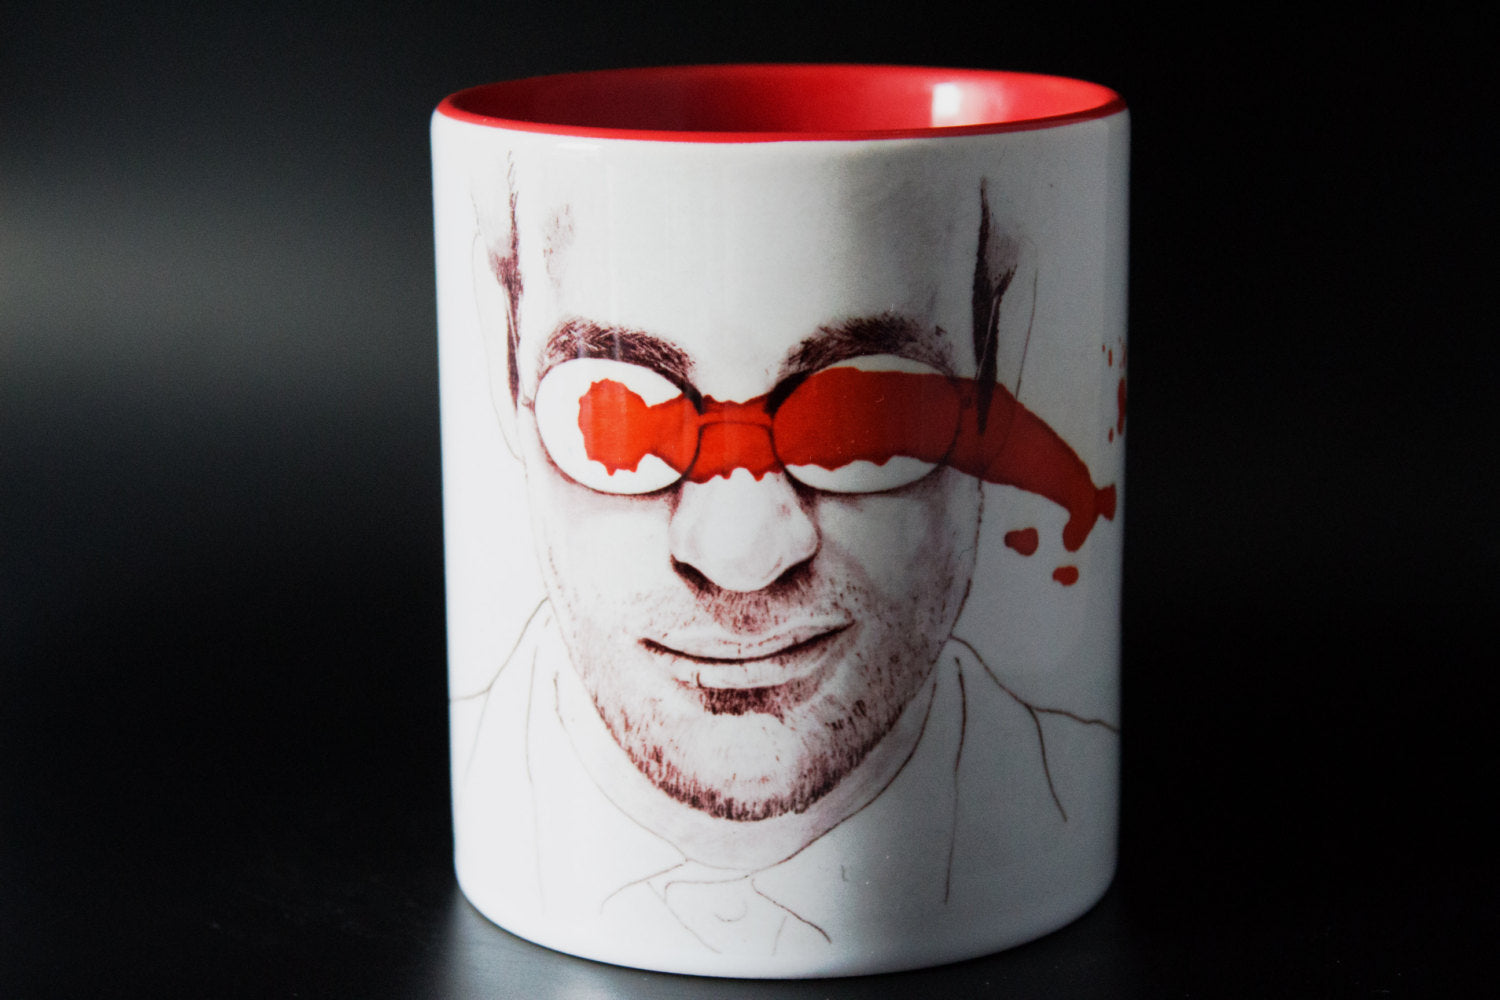 Nelson and Murdock - Daredevil - Hand Crafted - Printed Cup - ByCandlelight27